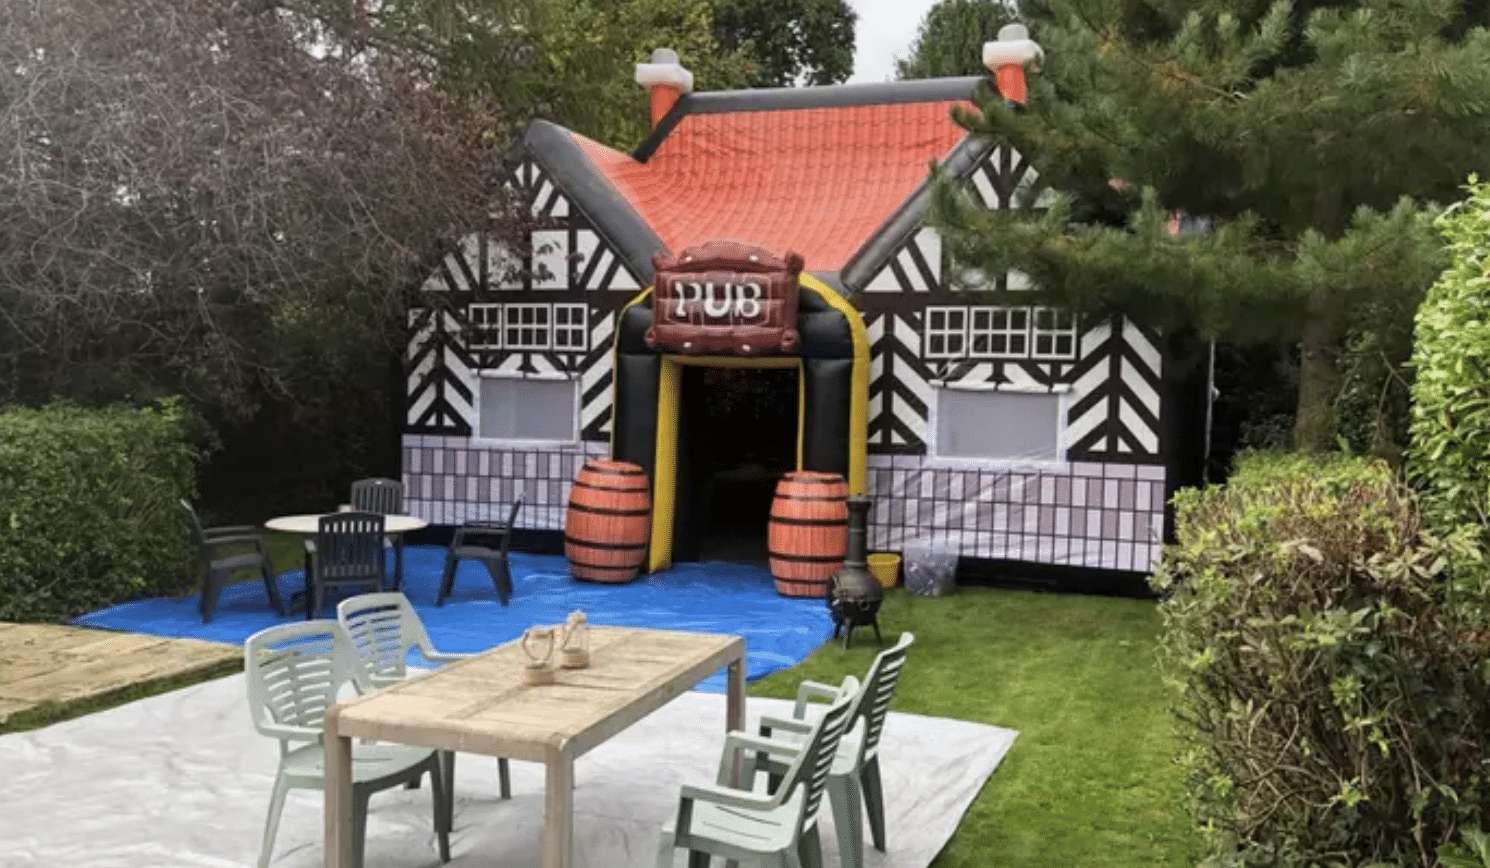 Inflatable pub back garden